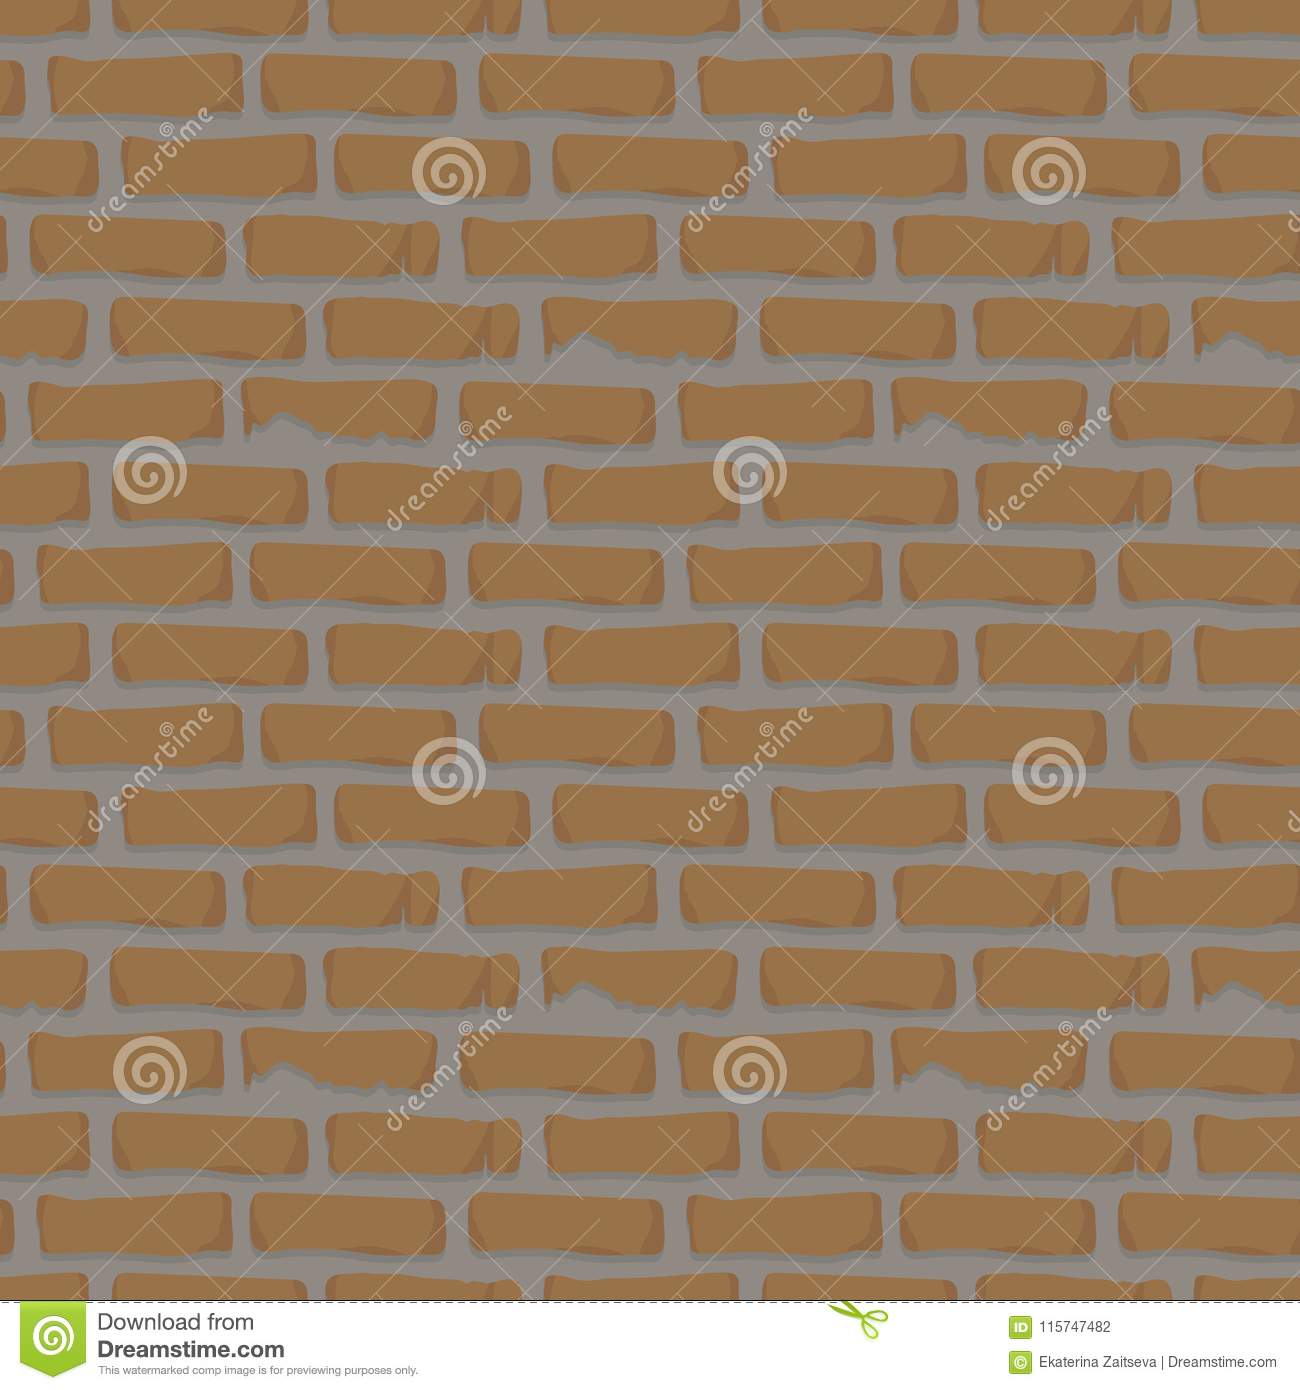 Seamless Pattern Brick Wall Orange With Cement Construction Mortar